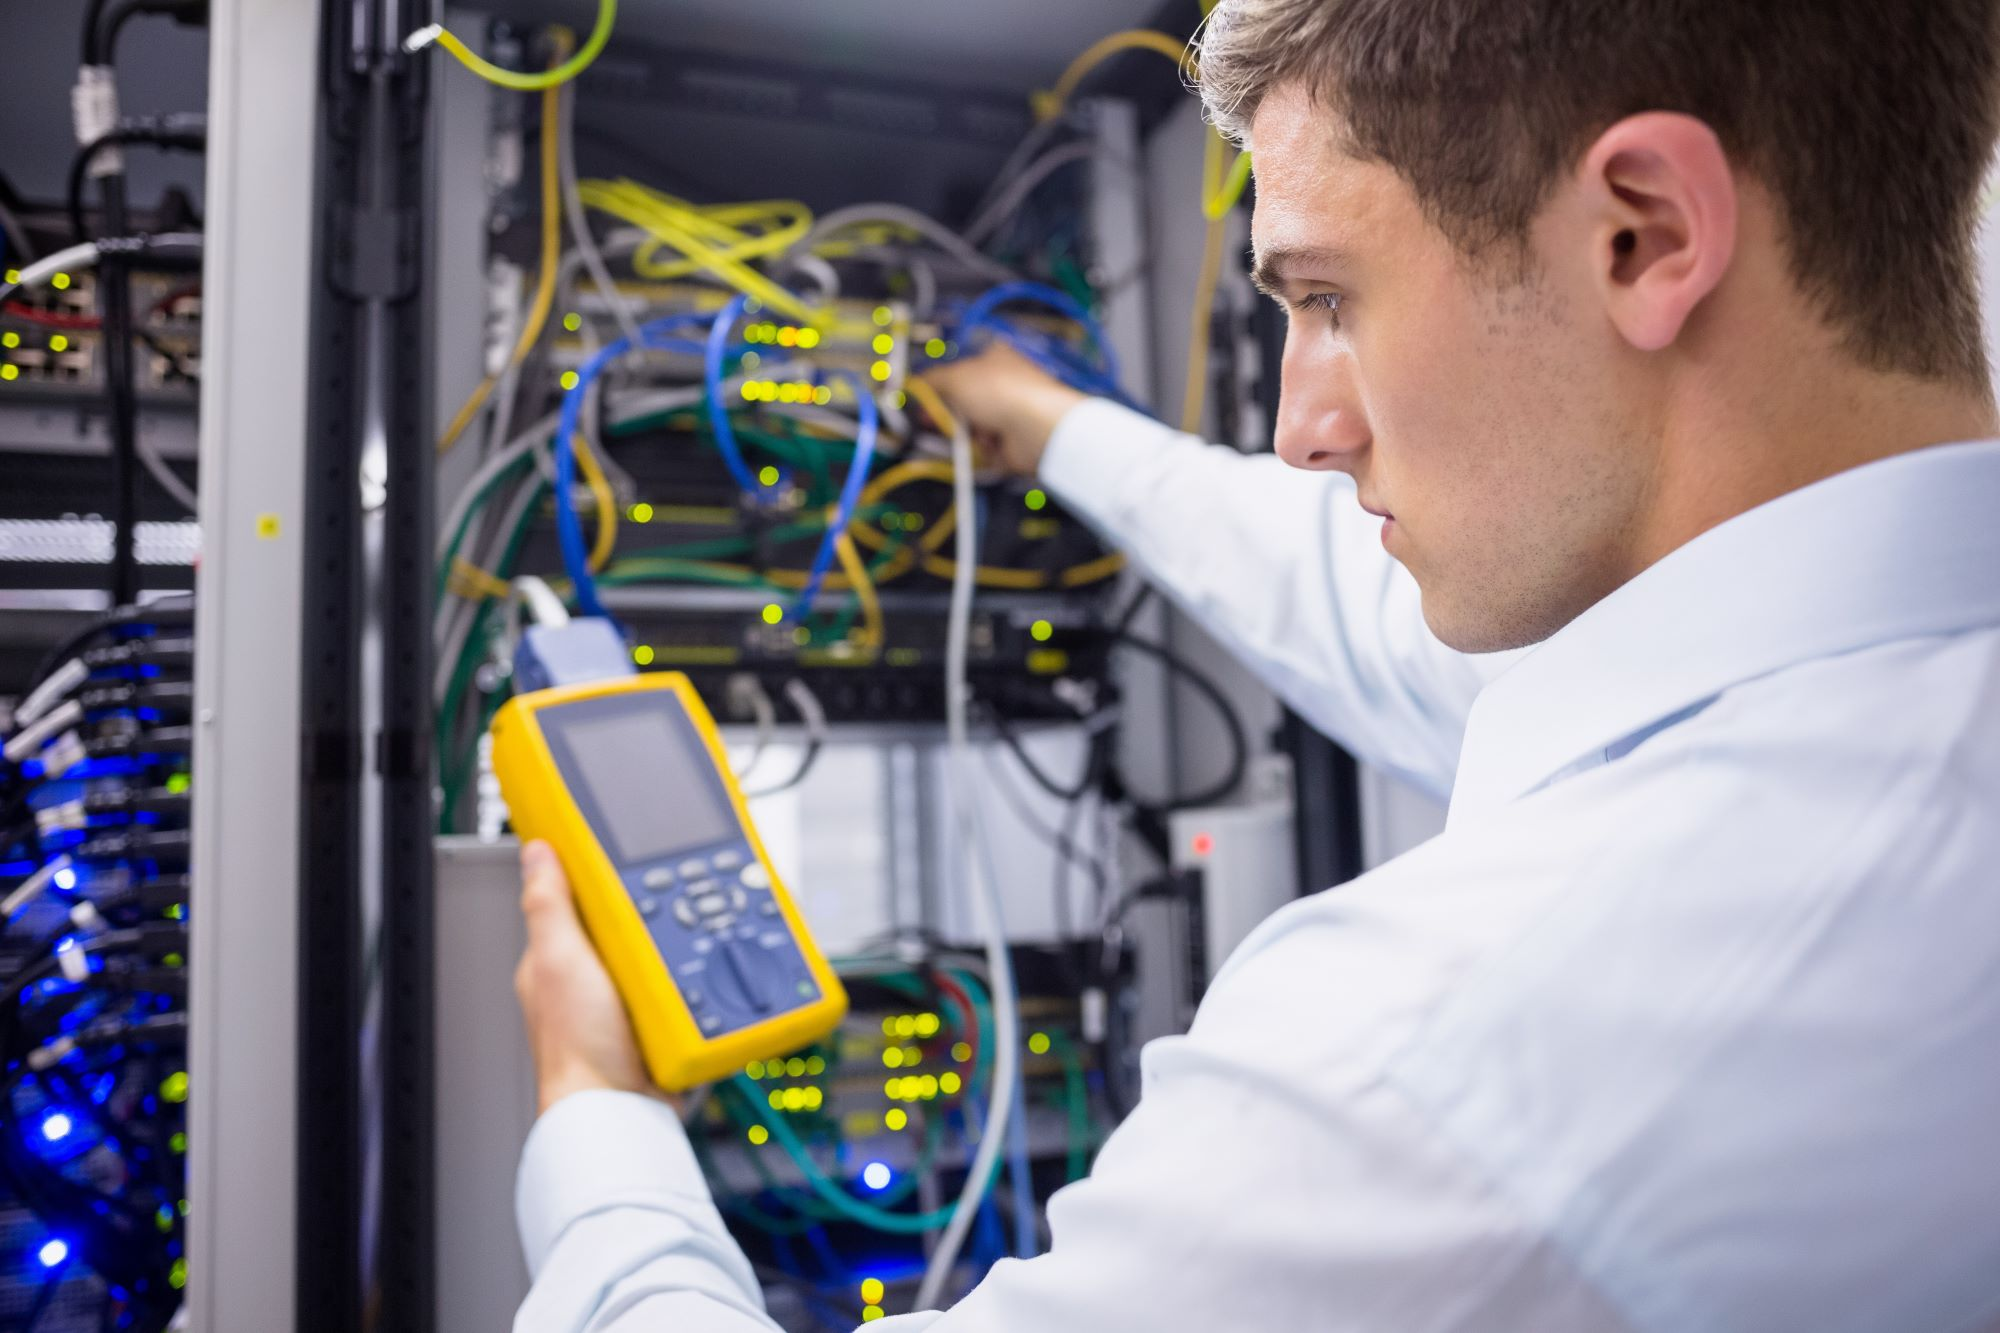 A team of technicians works on providing managed services solutions